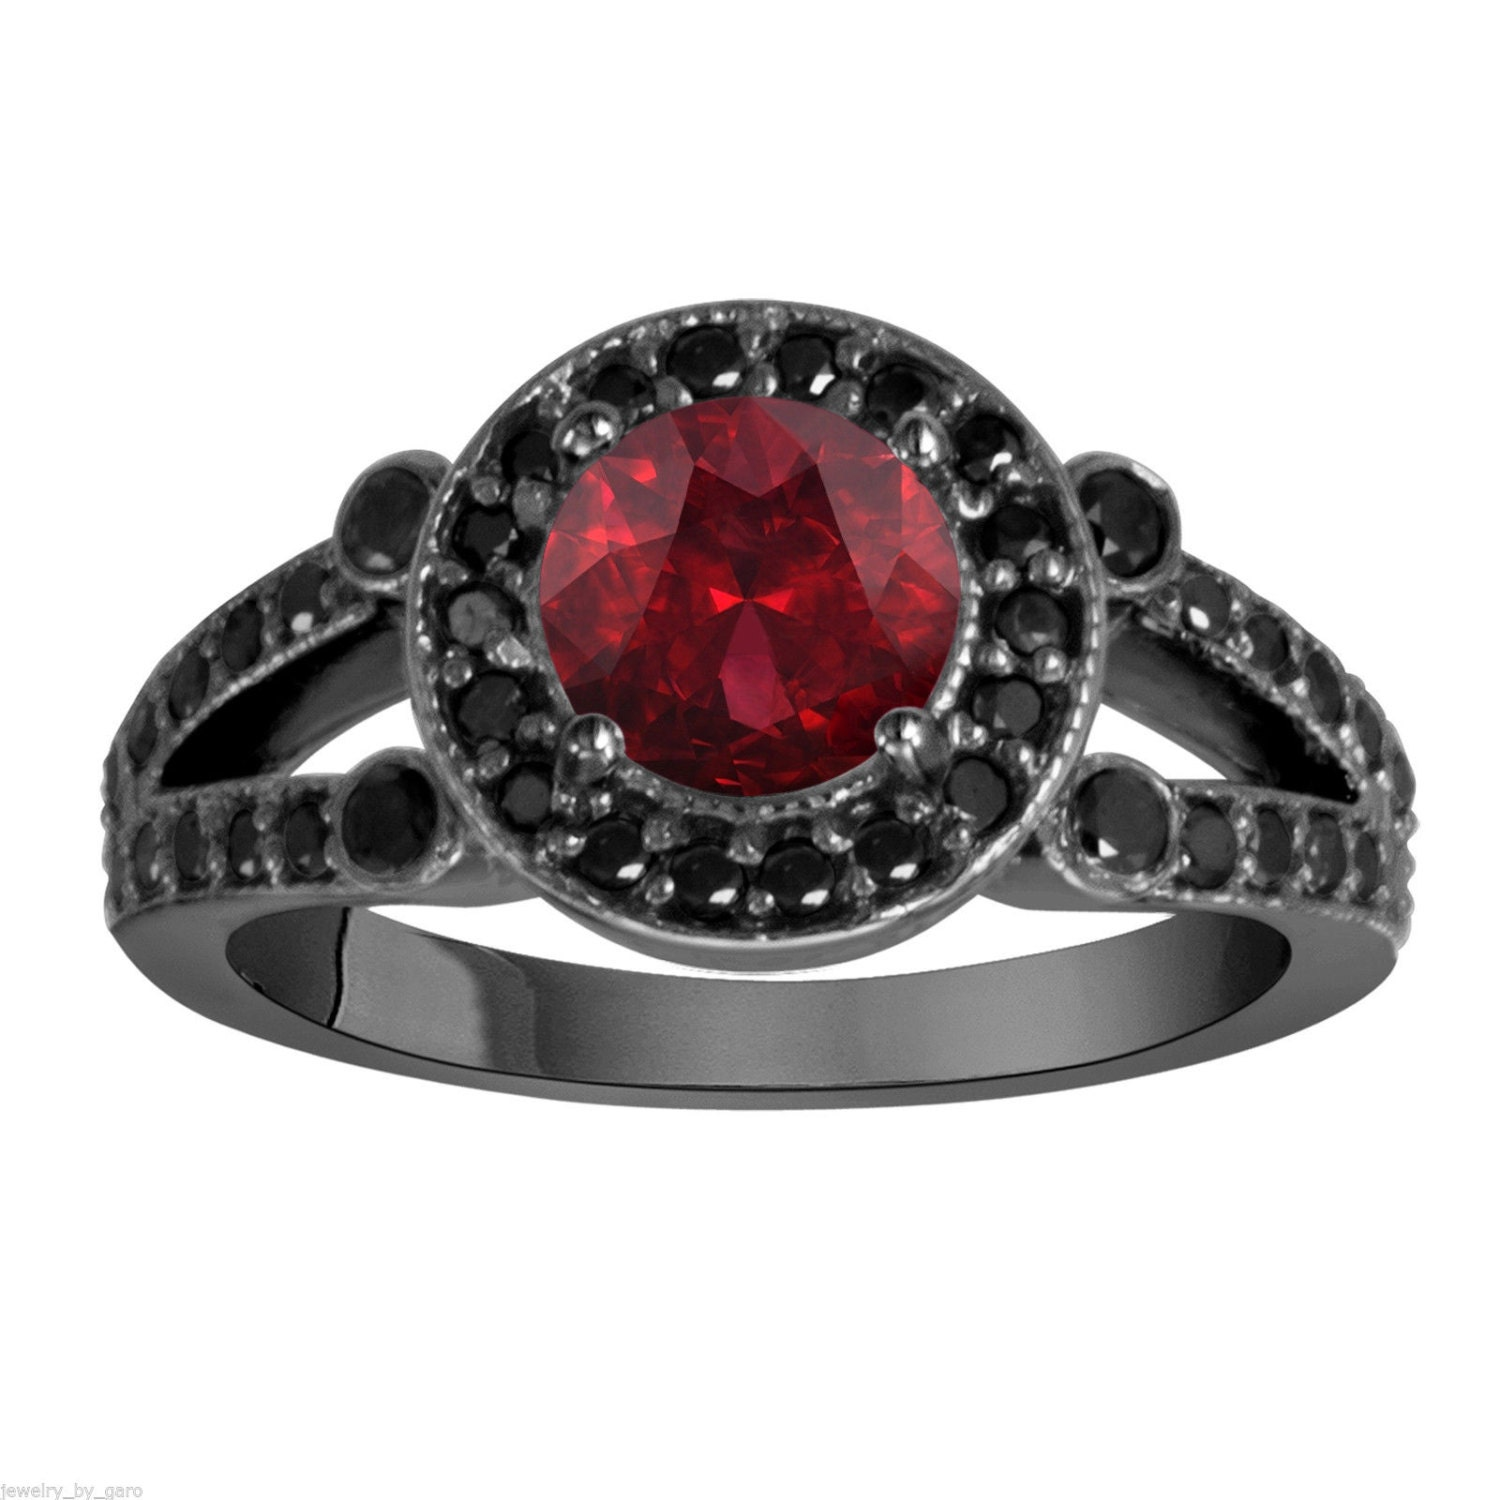 design aaa inlaid accessory item unique opk blood rings square jewelry men in red for top austria ruby zircon grade from fashion brand royal